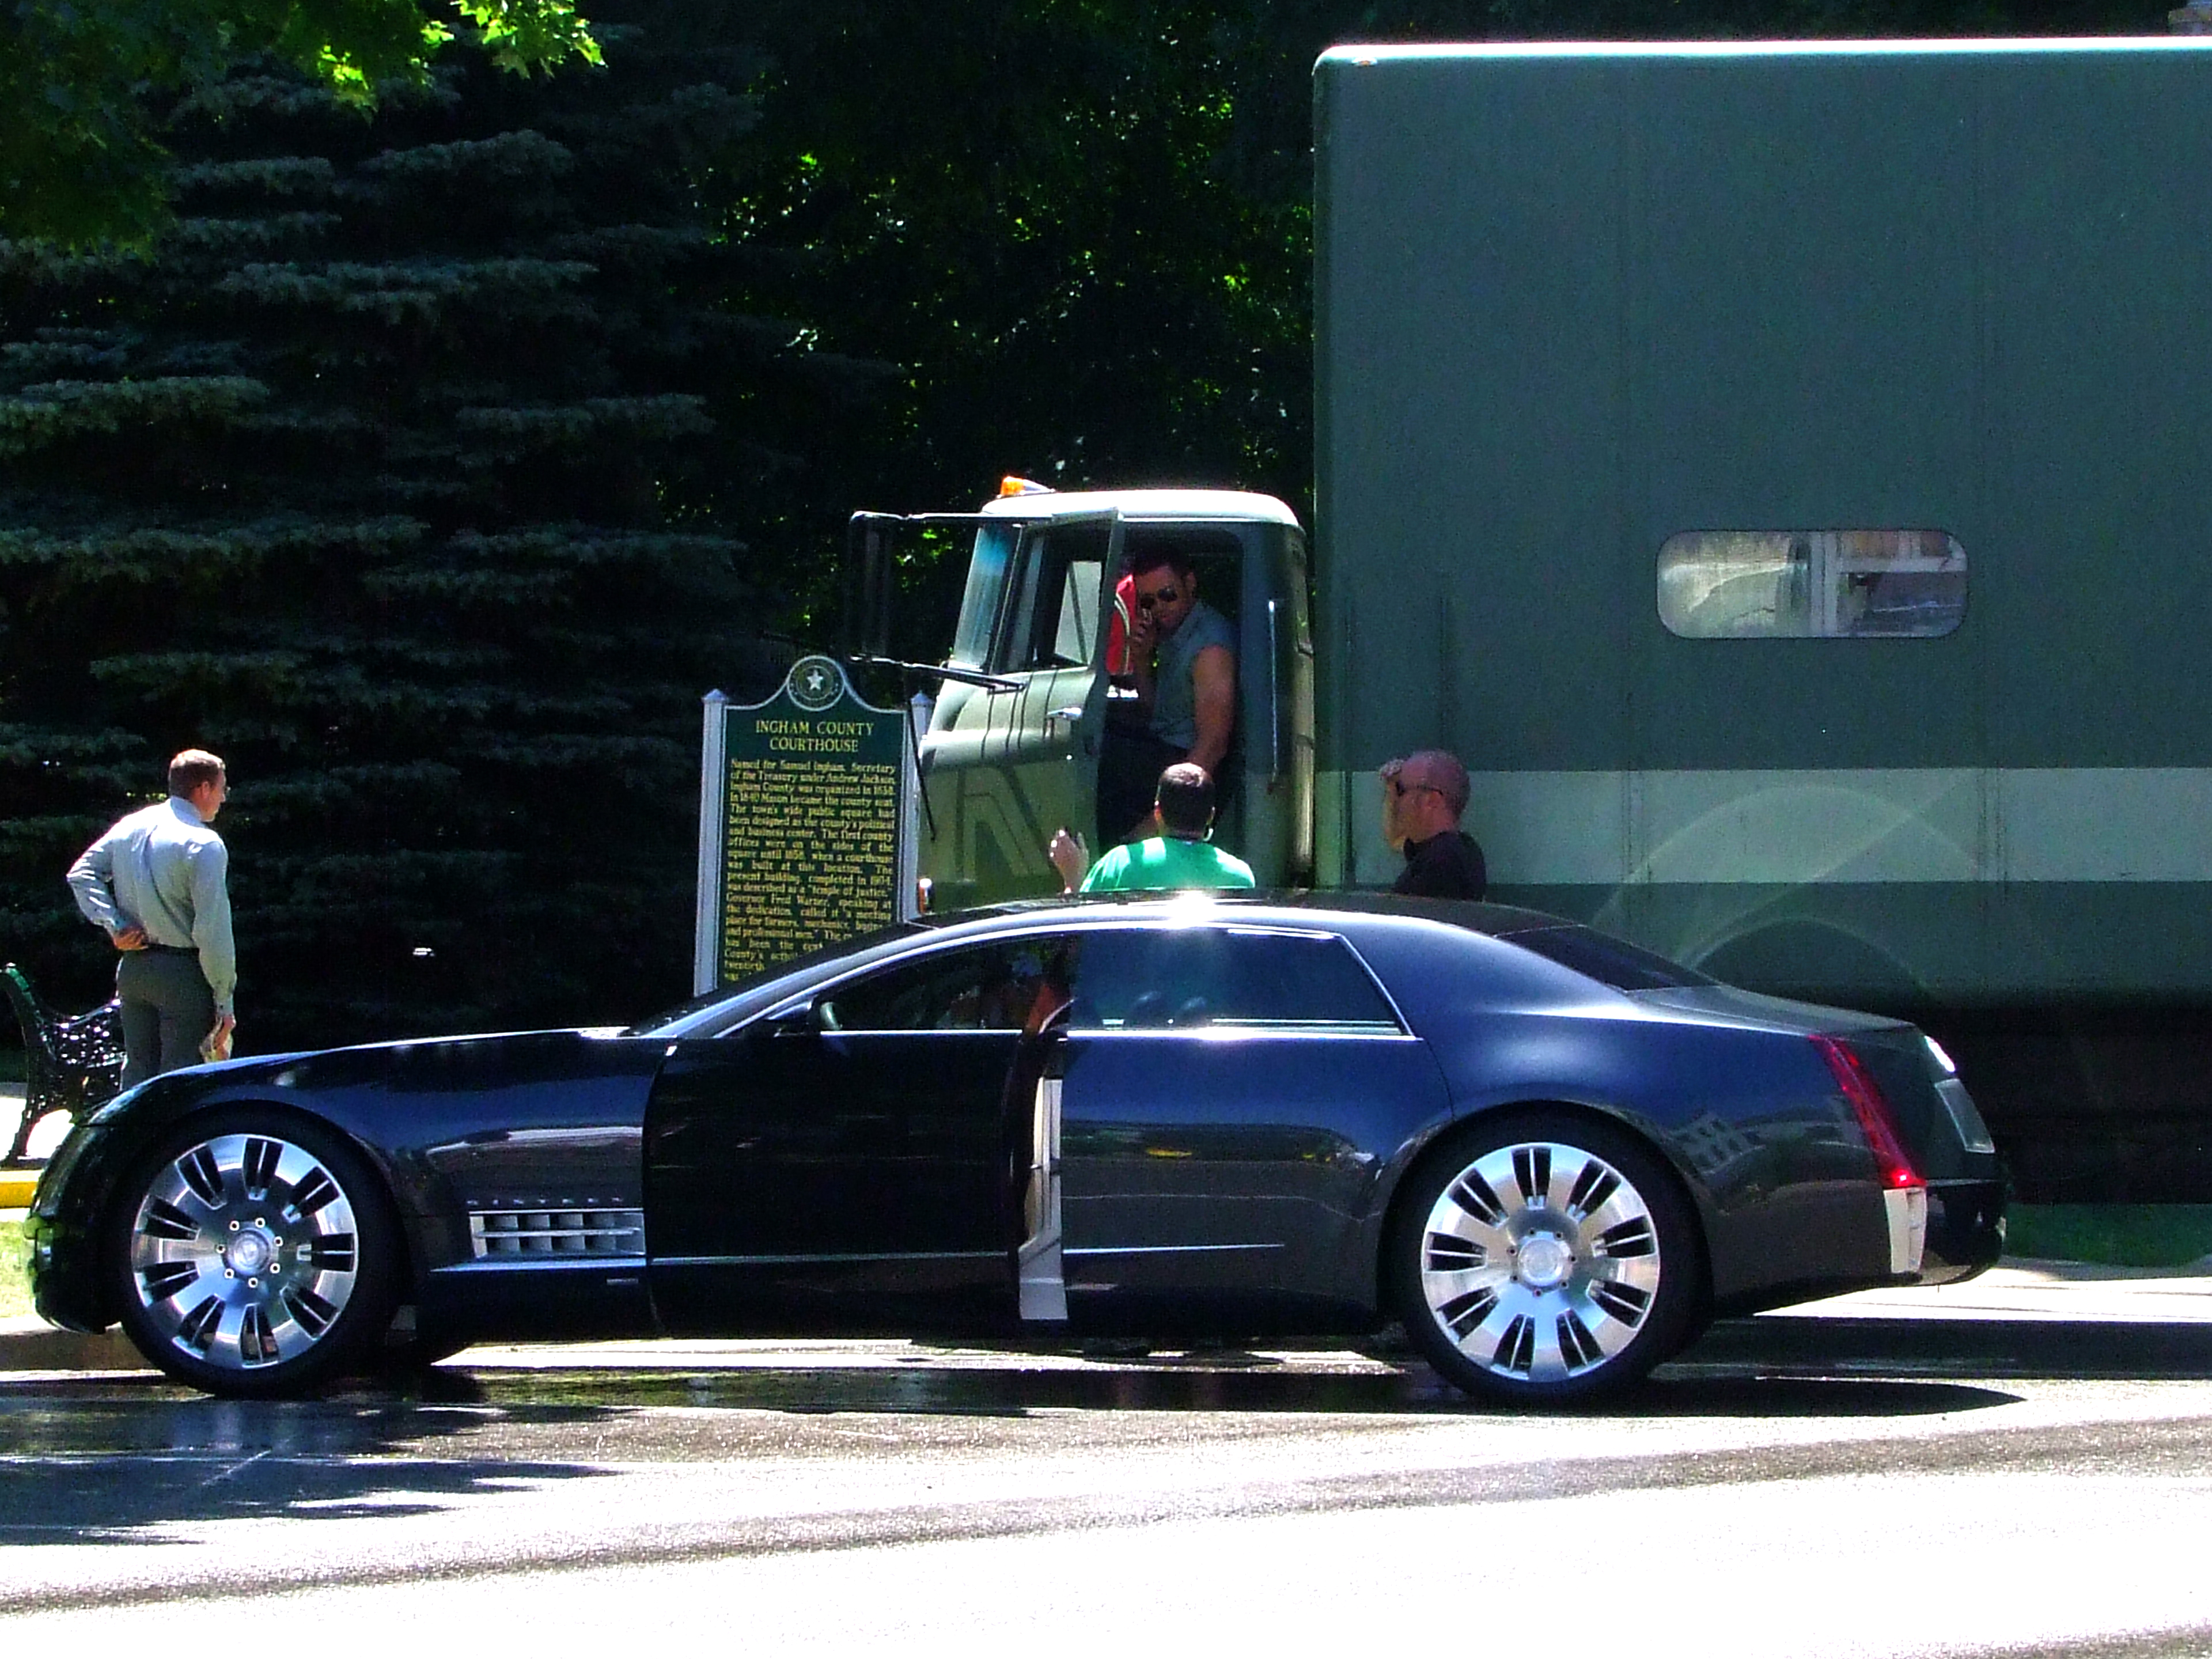 Used Cars In Usa >> File:Cadillac Sixteen concept - Hugh Jackman in action.jpg - Wikimedia Commons